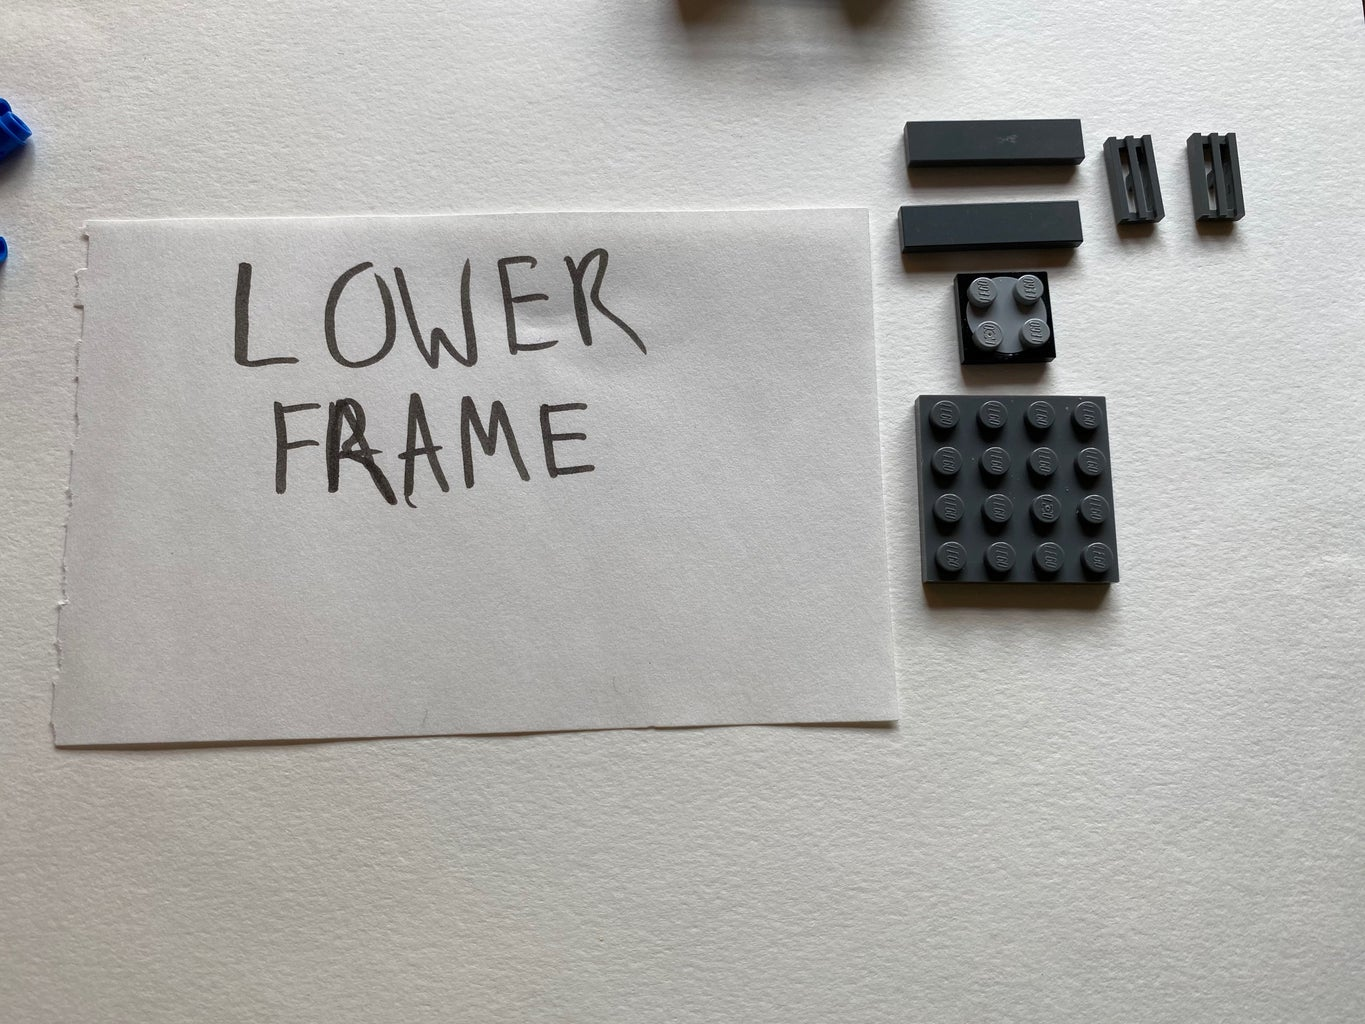 Build the Lower Frame